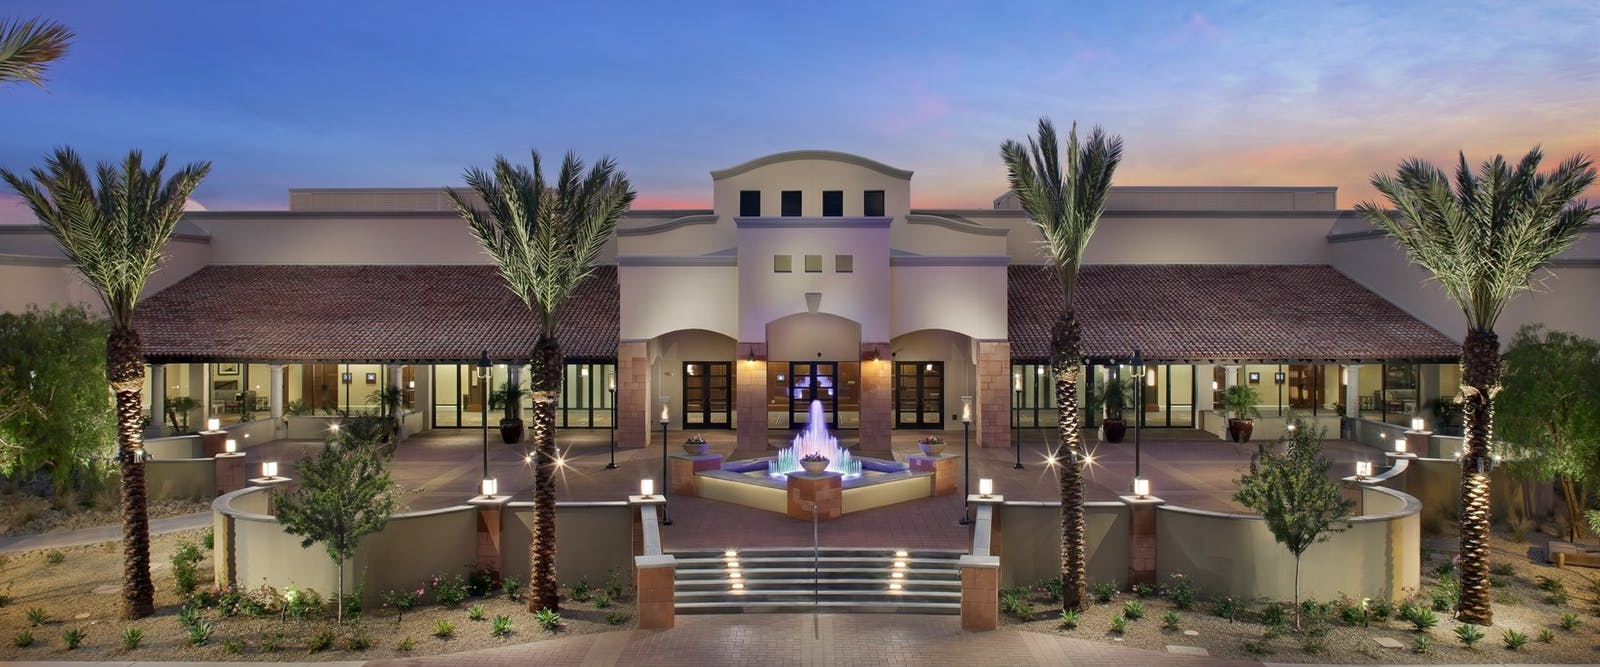 Exterior of Fairmont Scottsdale, Arizona